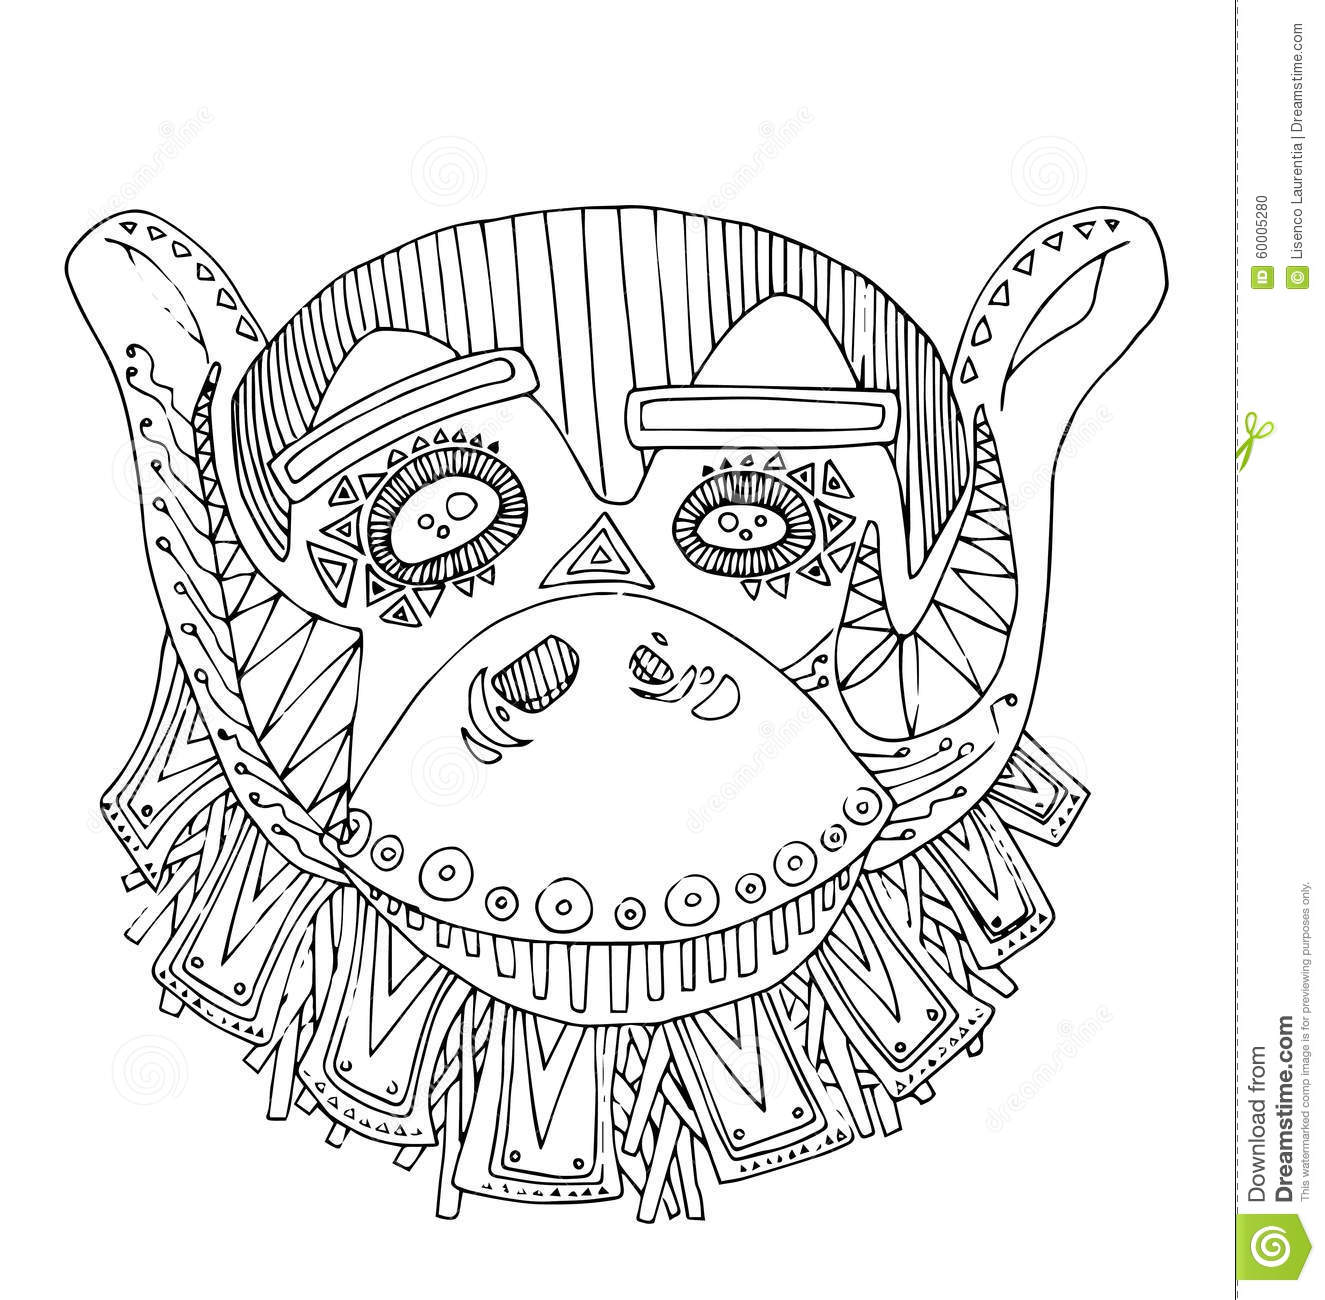 The Monkey Hand Drawing Outline Cartoon For Coloring Stock Vector